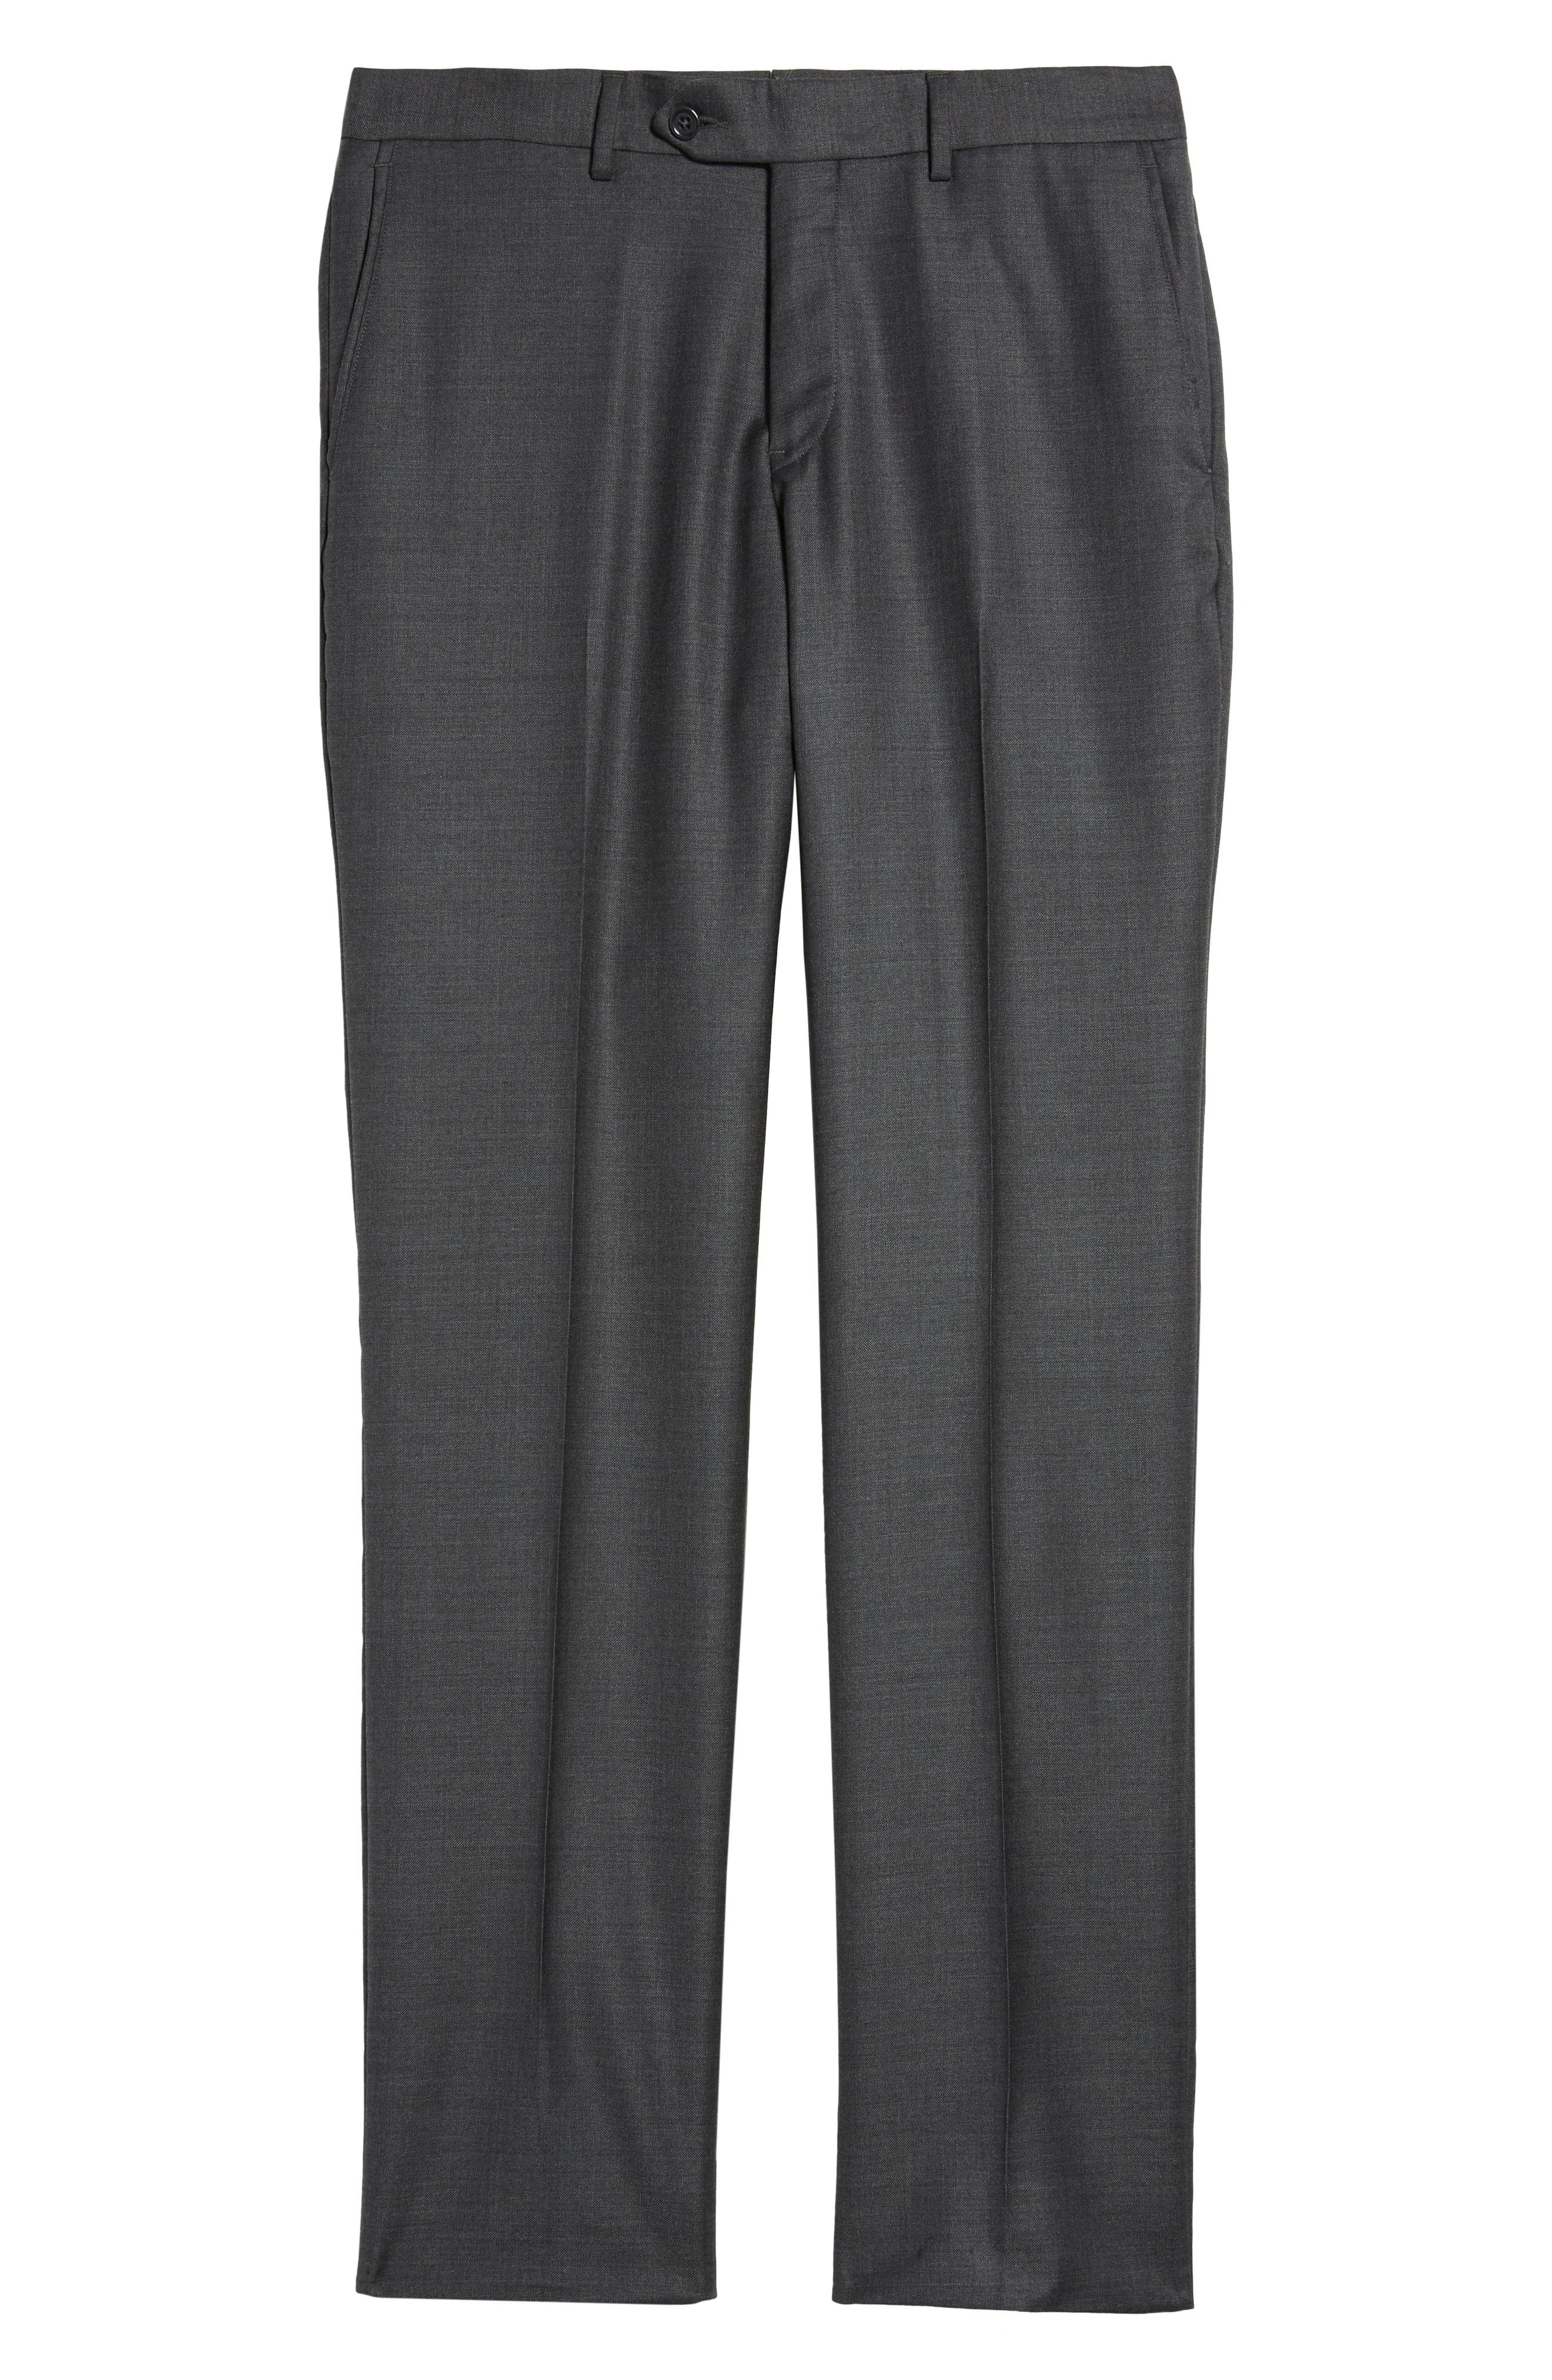 NORDSTROM MEN'S SHOP,                             Flat Front Sharkskin Wool Trousers,                             Alternate thumbnail 6, color,                             025